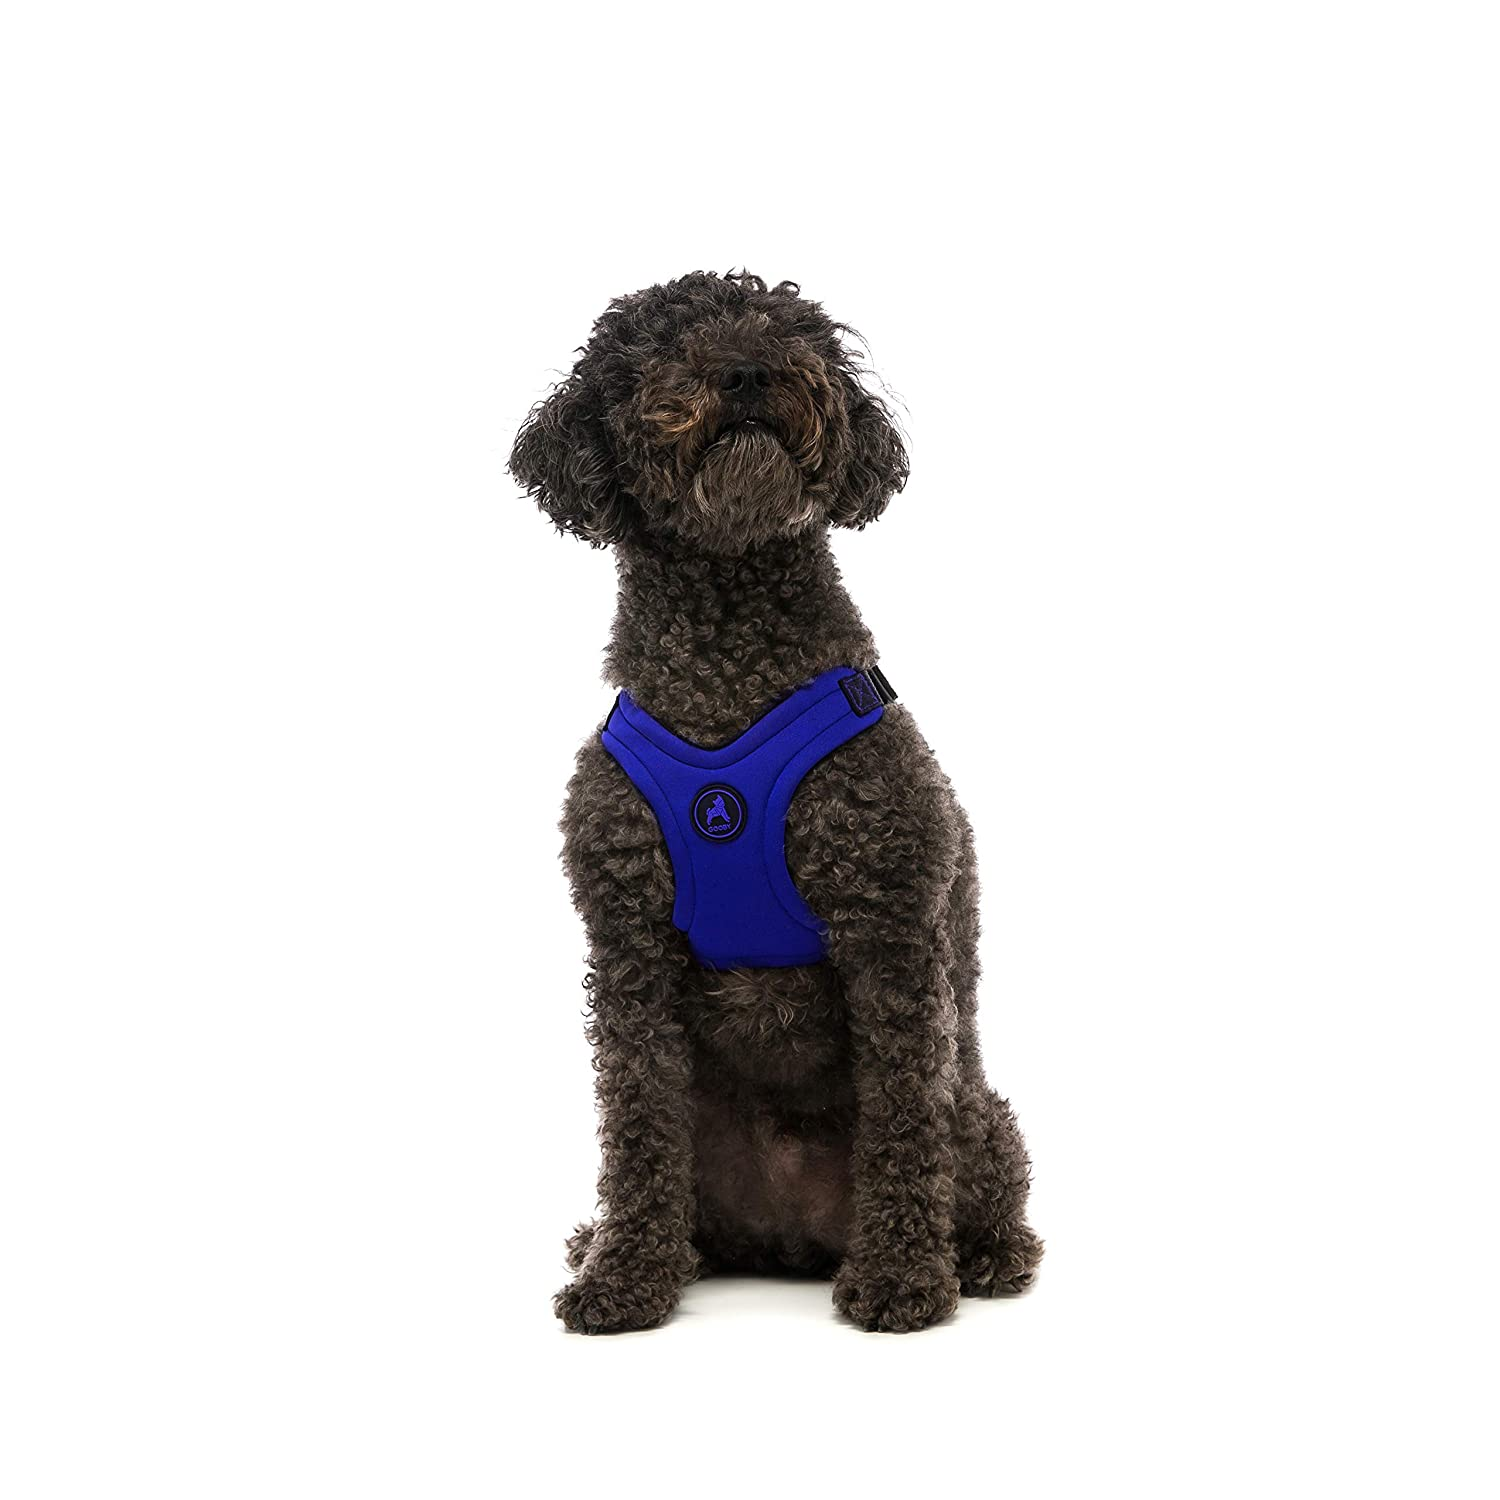 Gooby Escape Free Sport Dog Harness for Dogs That Pulls and Escapes, bluee, Medium